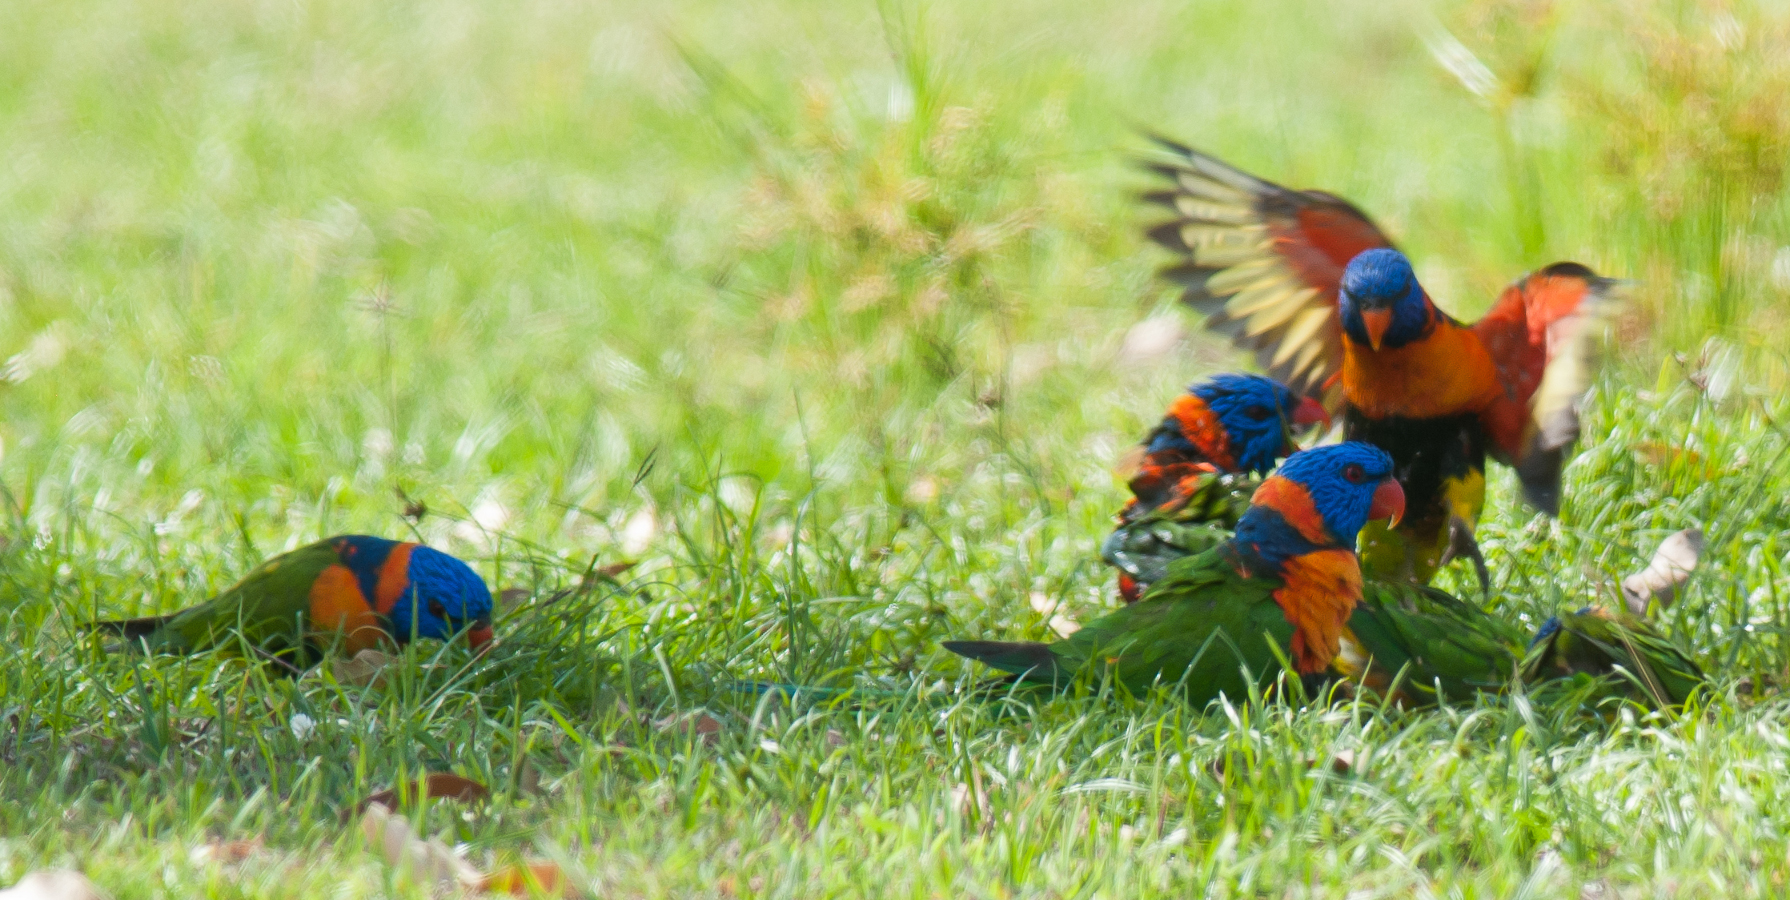 Red-collared Lorikeets at Pine Creek, credit Frank Taylor